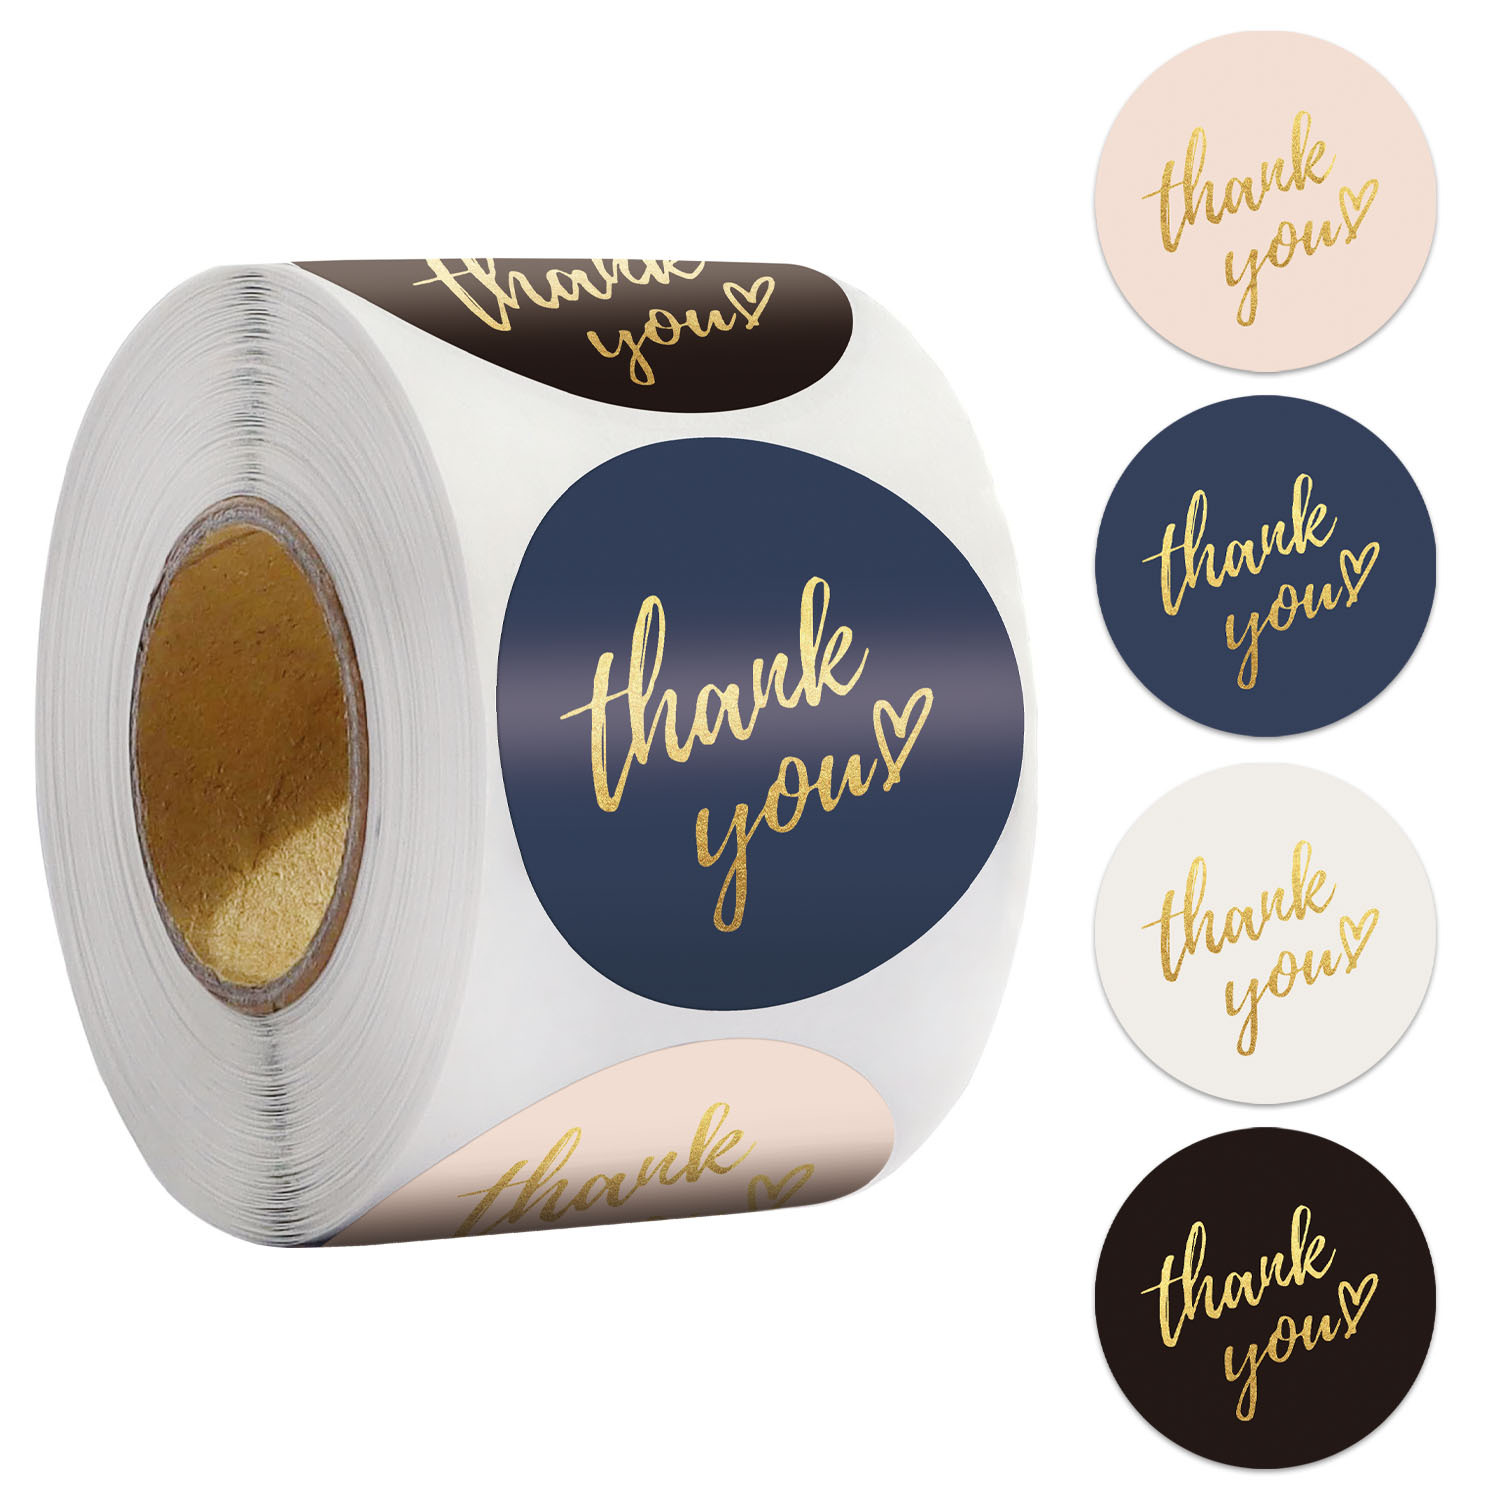 Blue Thank You Stickers Seal Labels 500pcs 1inch Gold Foil Paper Decoration Sticker For Handmade Wedding Gift Labels Stationery